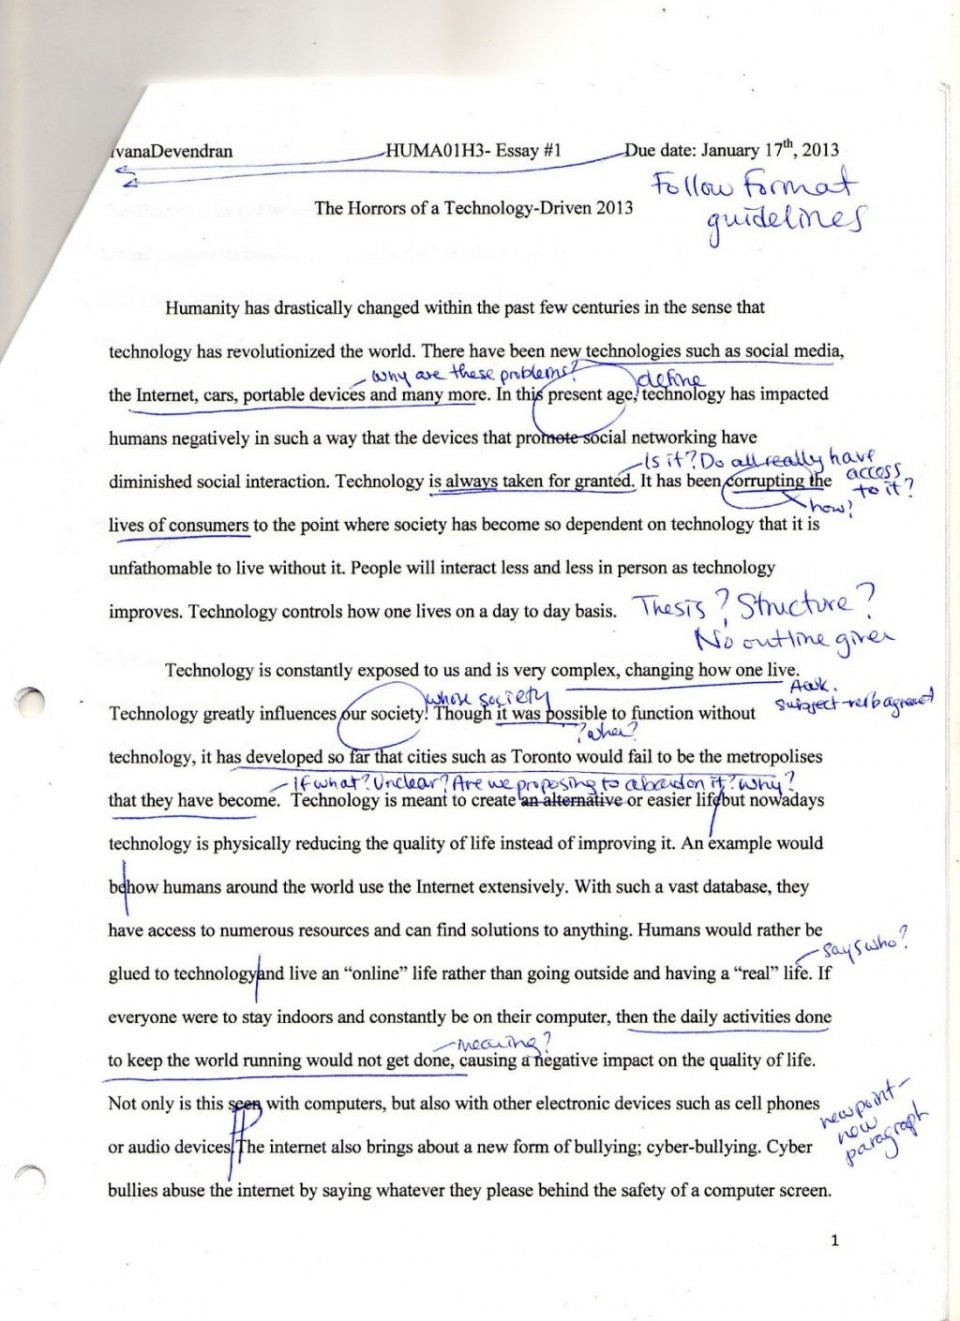 012 Popular Music Researchr Topics Essay Img008 What Should You Avoid In Writing Humanities Appreciation Questions Classical History Persuasive20 1024x1410 Fantastic Research Paper Related 960